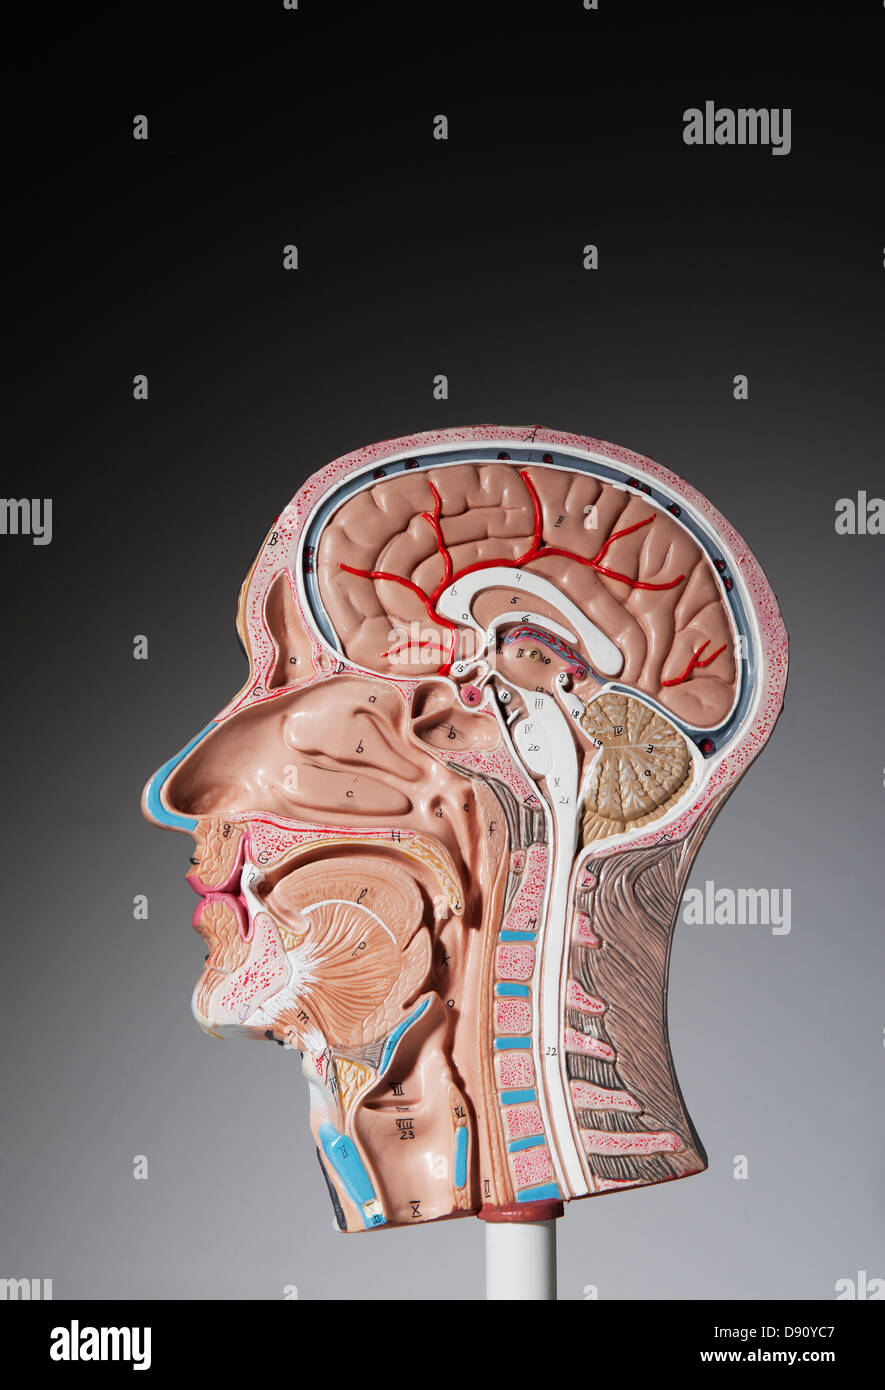 Anatomical Model Of Human Head Stock Photos Anatomical Model Of